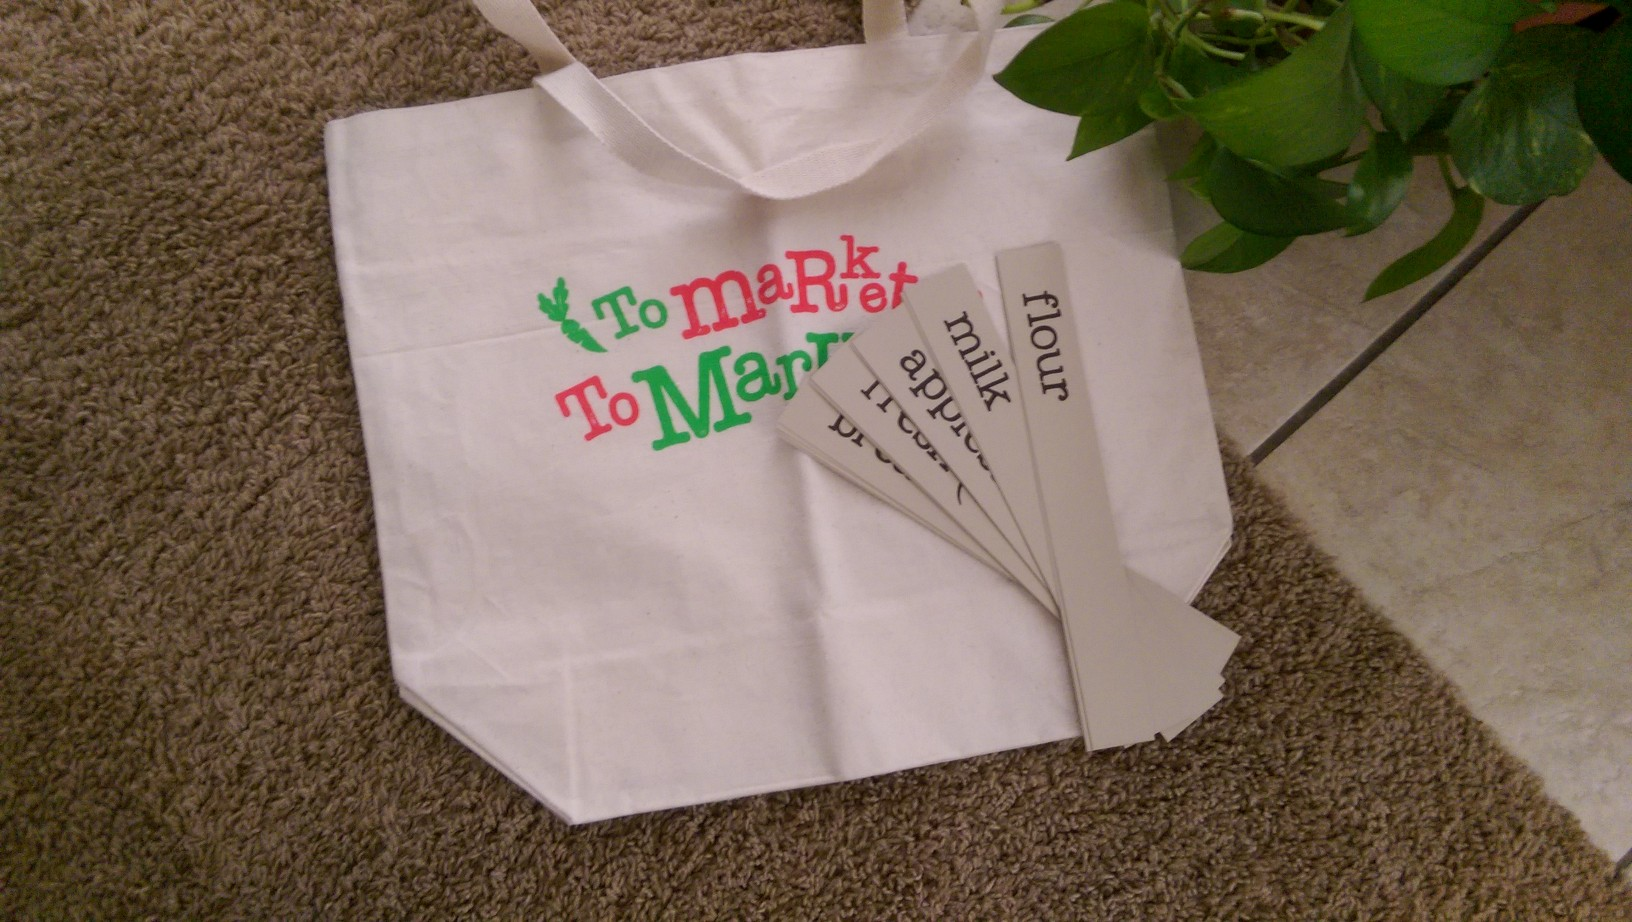 Grocery cards and shopping tote to make grocery shopping easier with children.